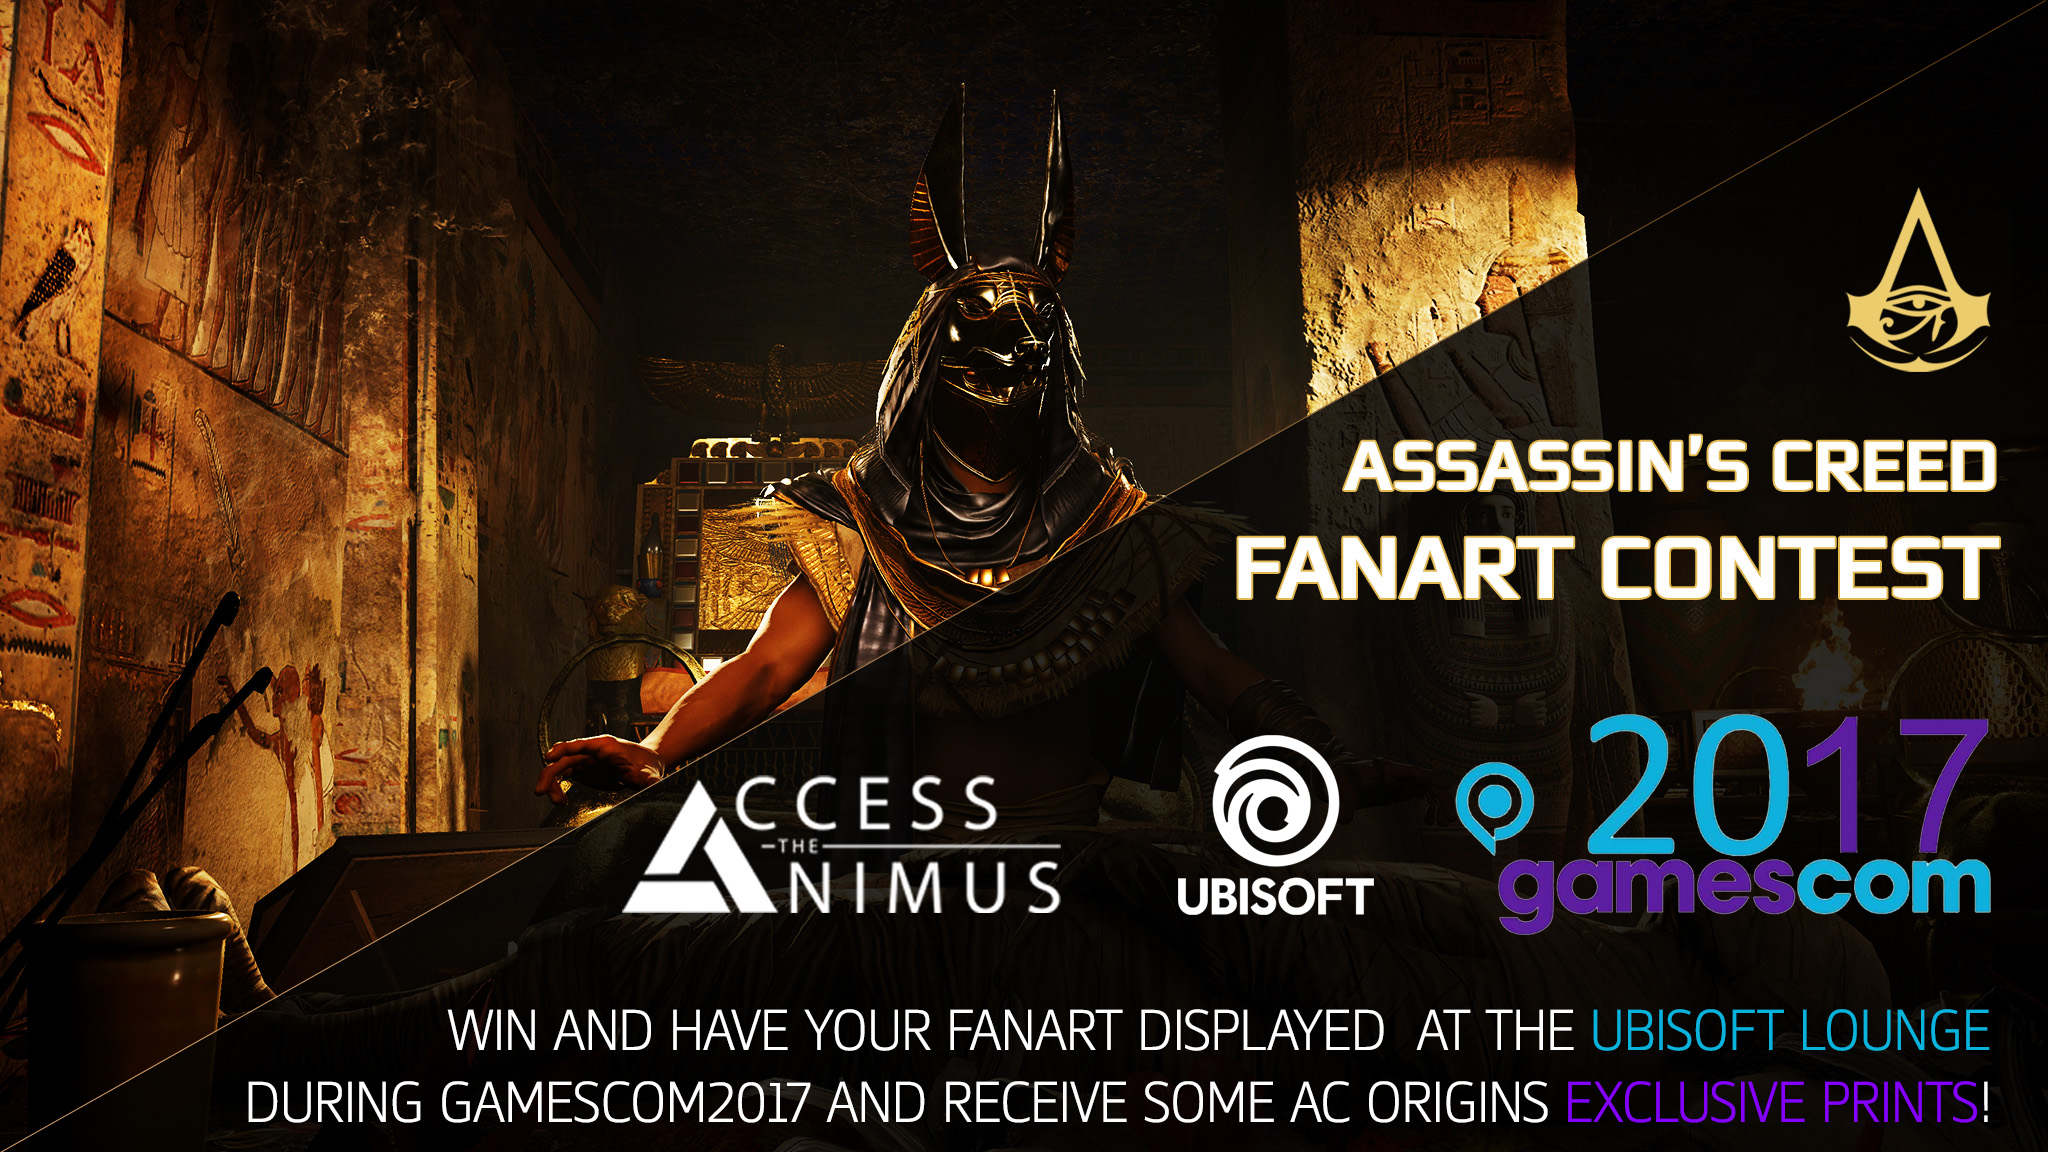 Assassin S Creed Fanart Contest By Access The Animus Gamescom2017